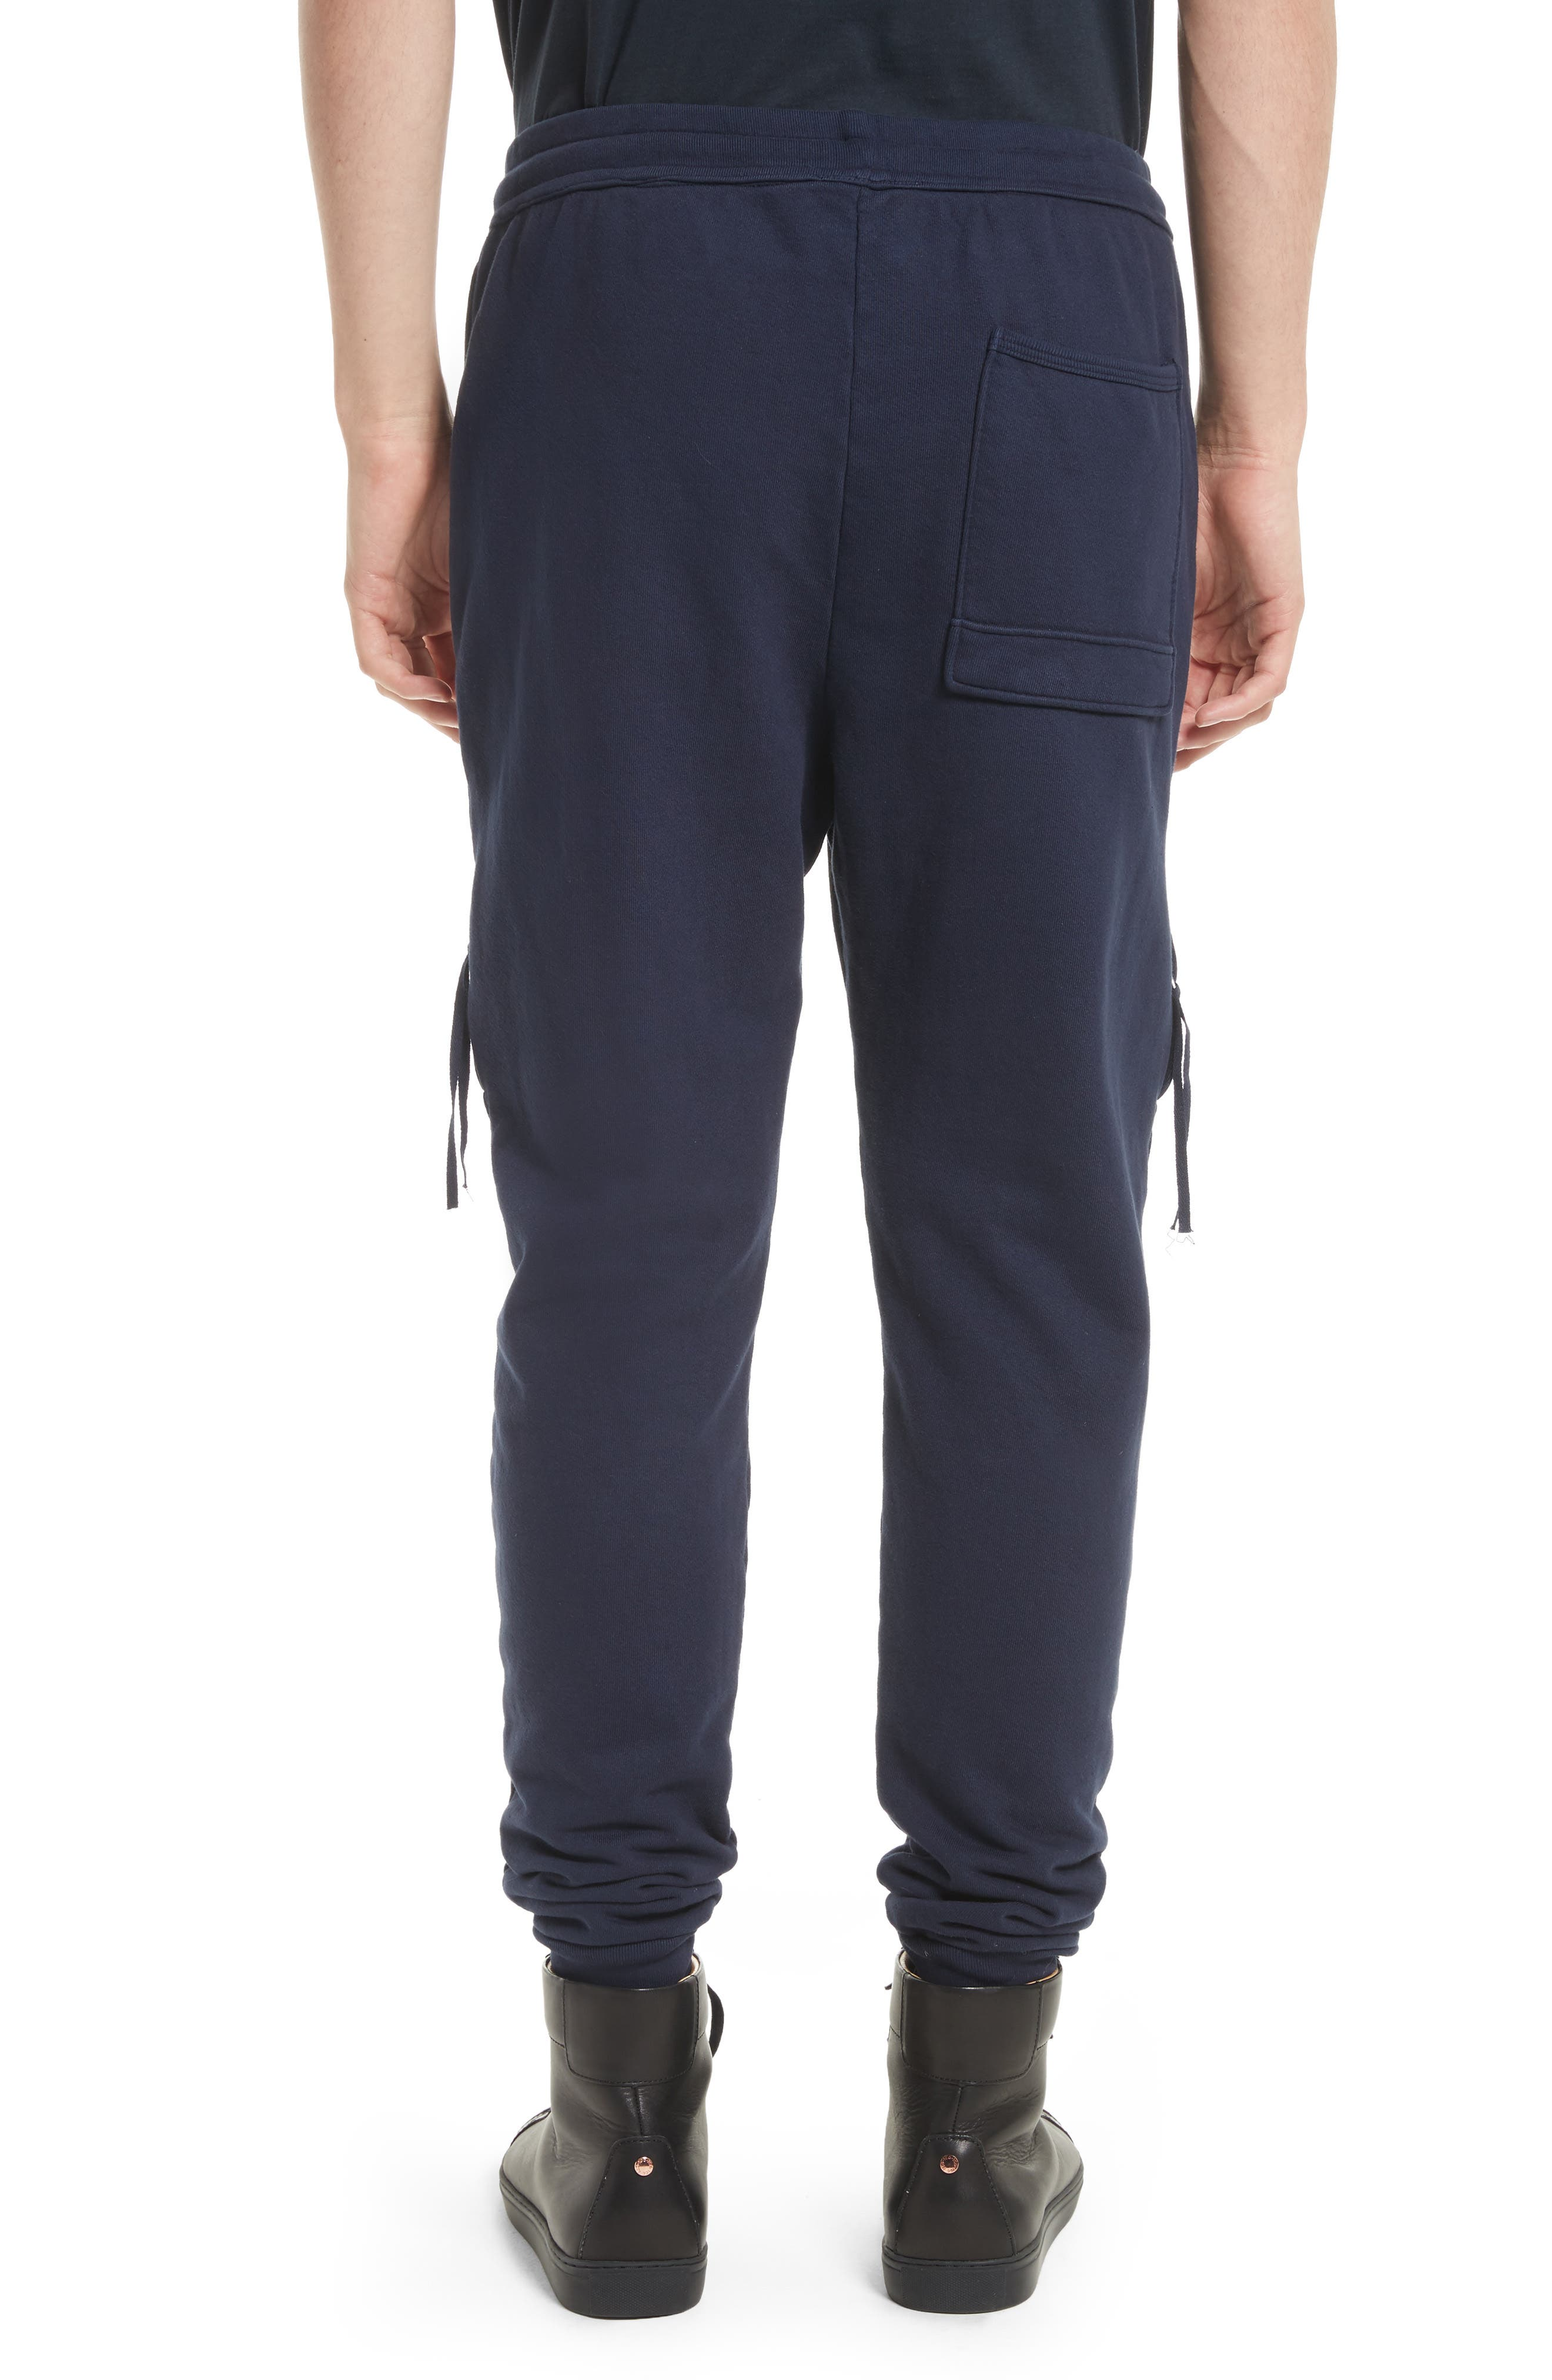 Muldoom Cargo Jogger Pants,                             Alternate thumbnail 4, color,